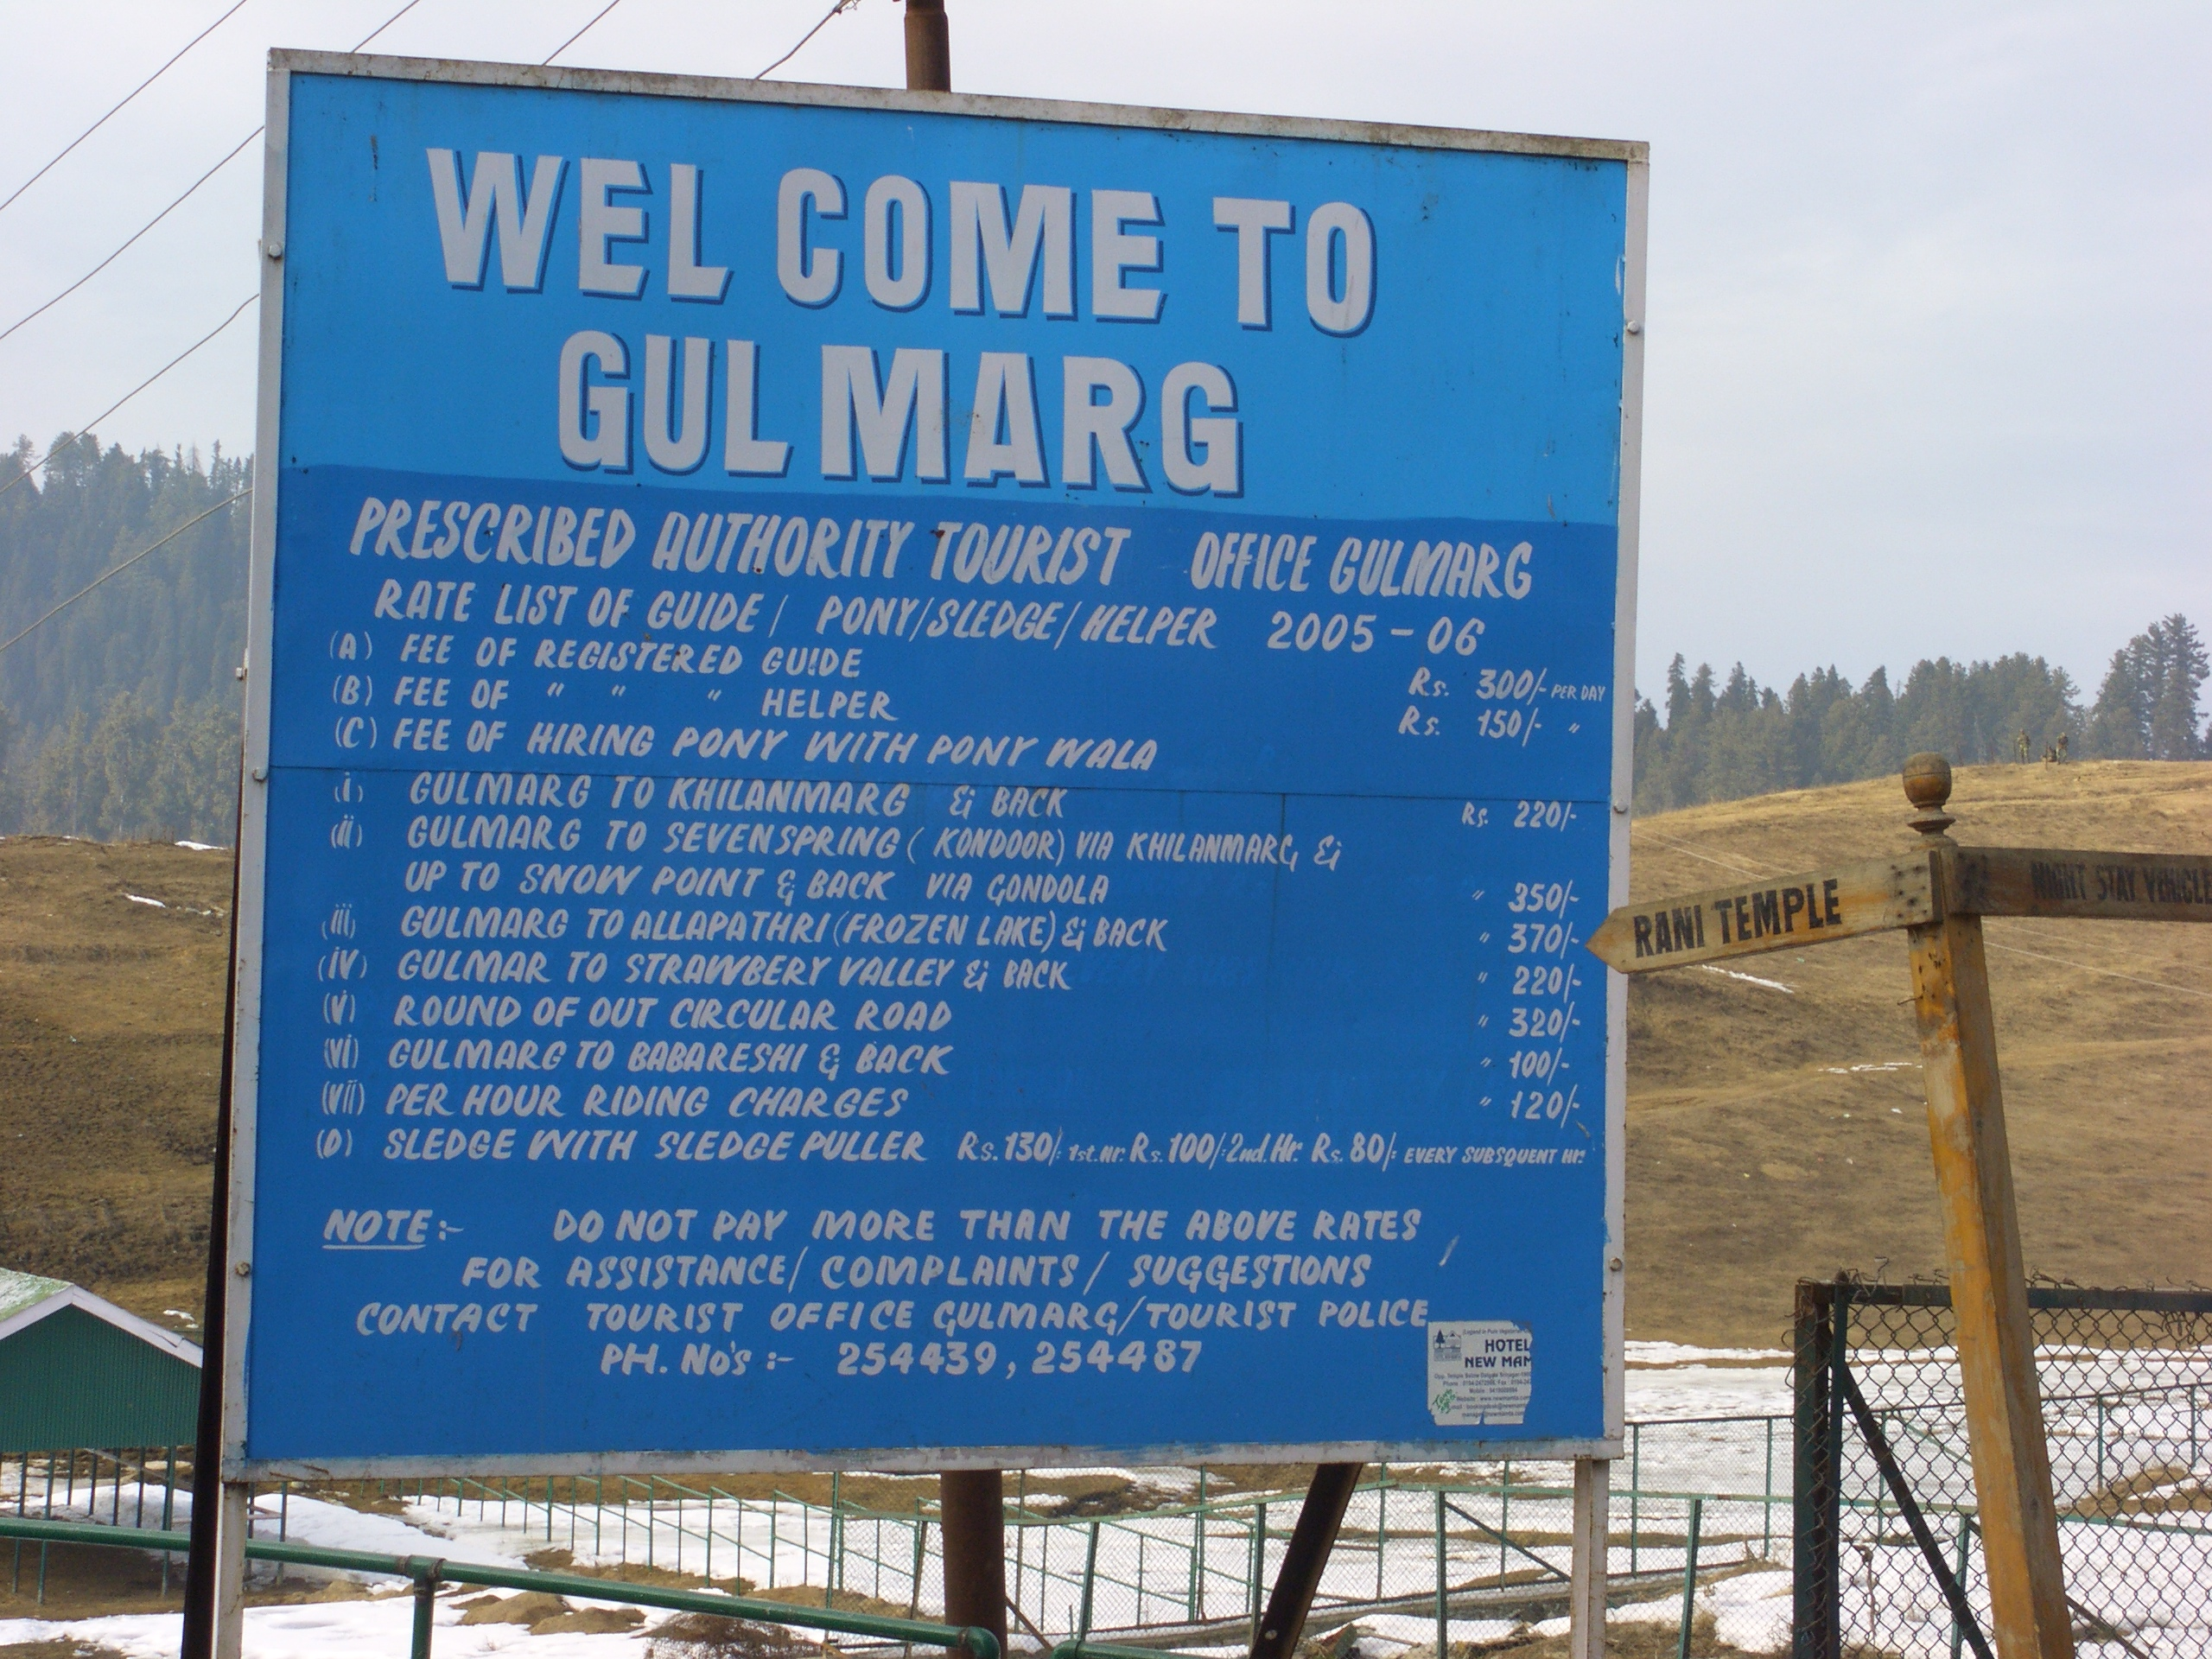 File Gulmarg Tourist Rate List Jpg Wikipedia